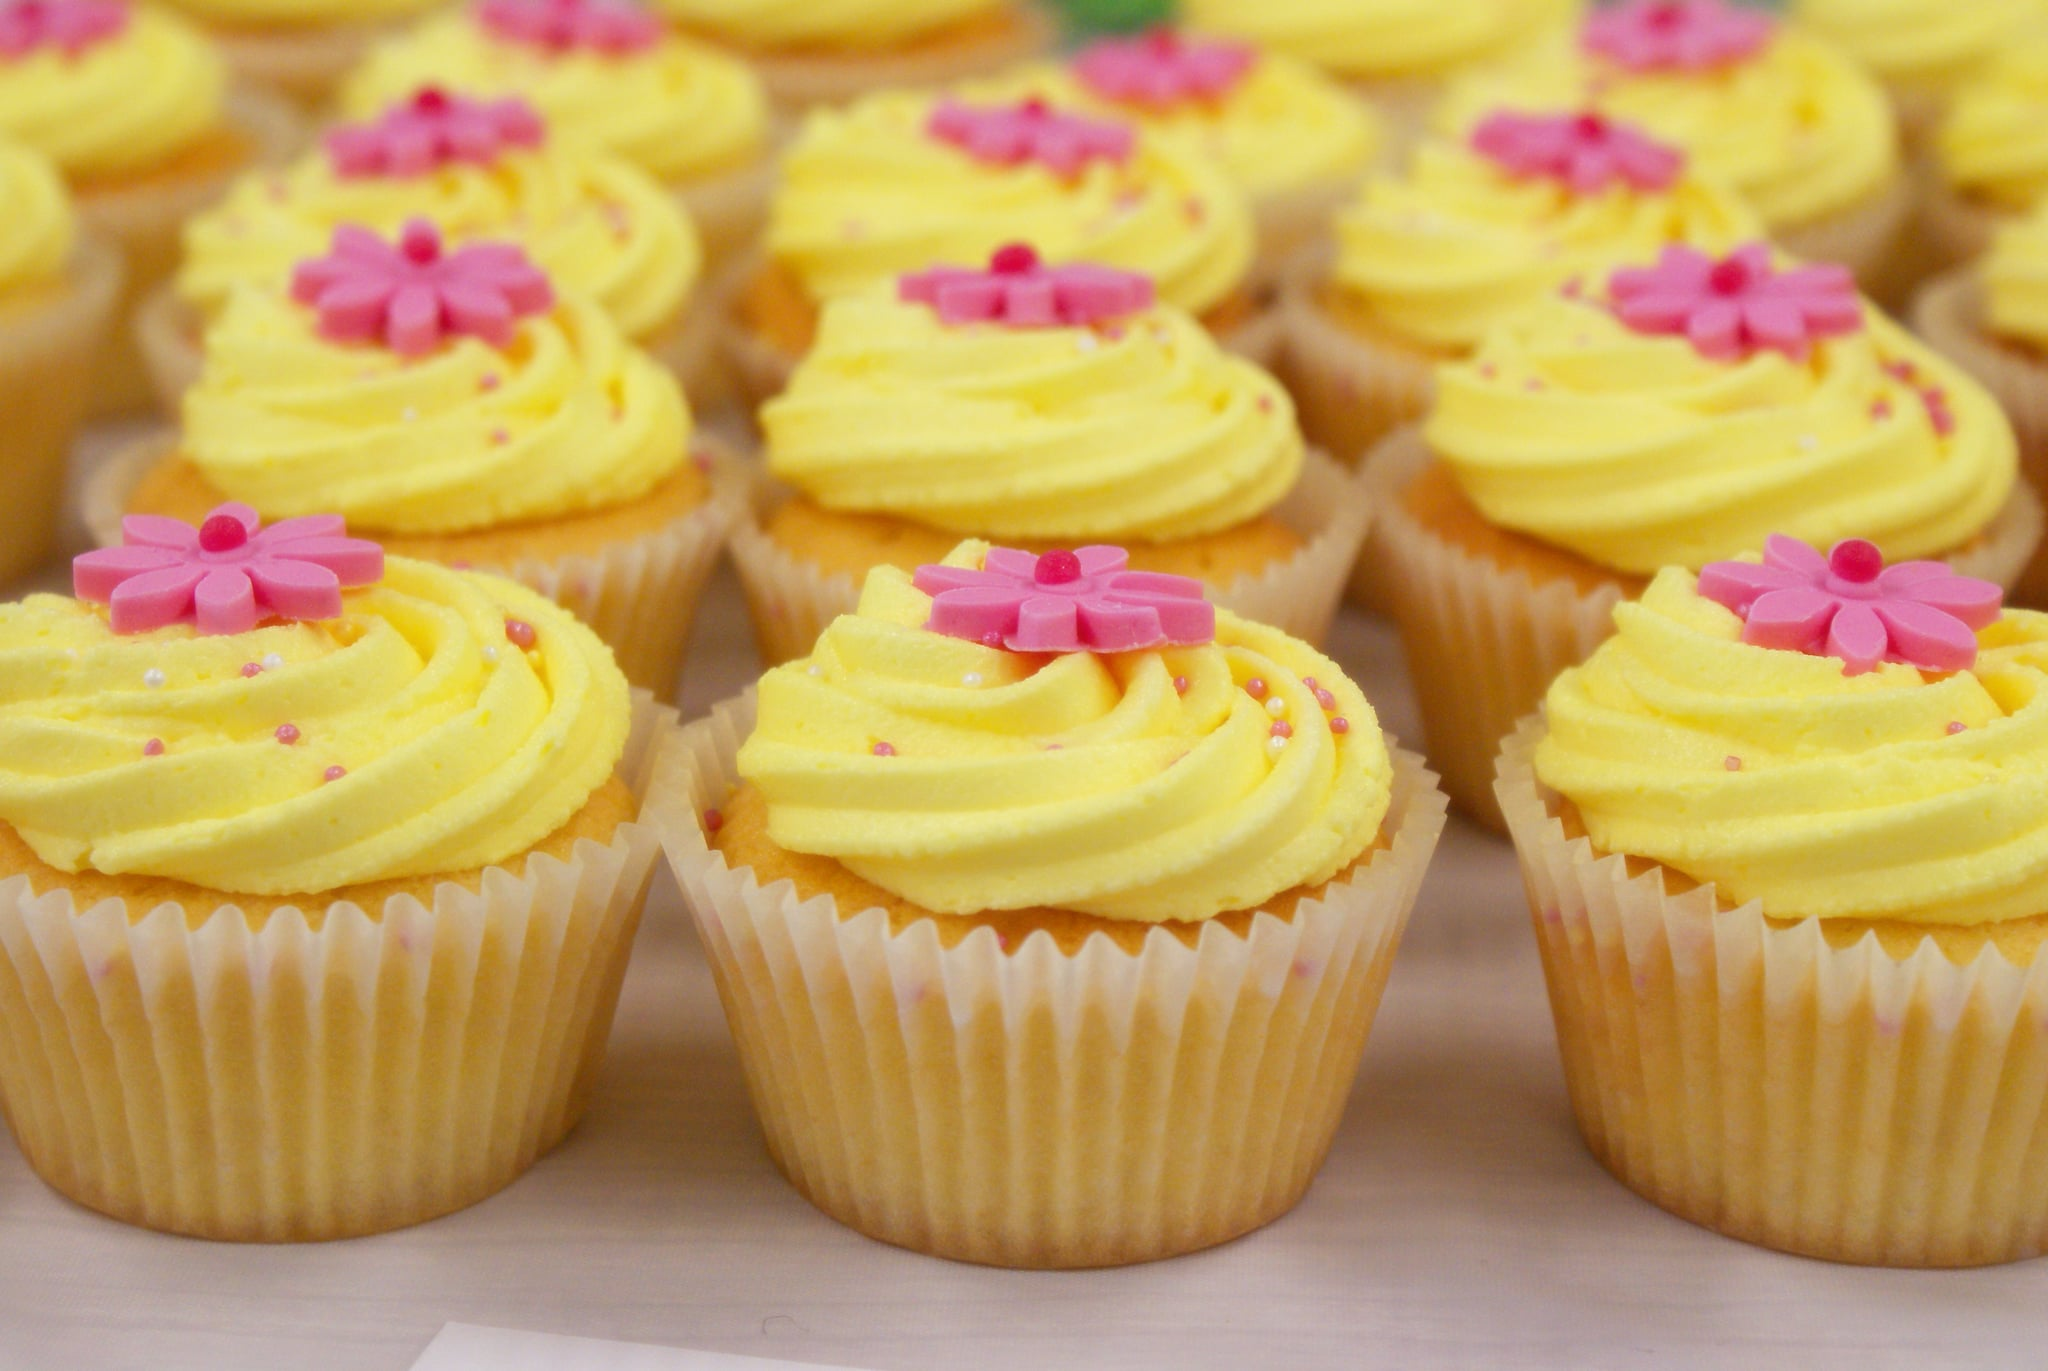 schools to ban birthday cupcakes and treats popsugar moms. Black Bedroom Furniture Sets. Home Design Ideas